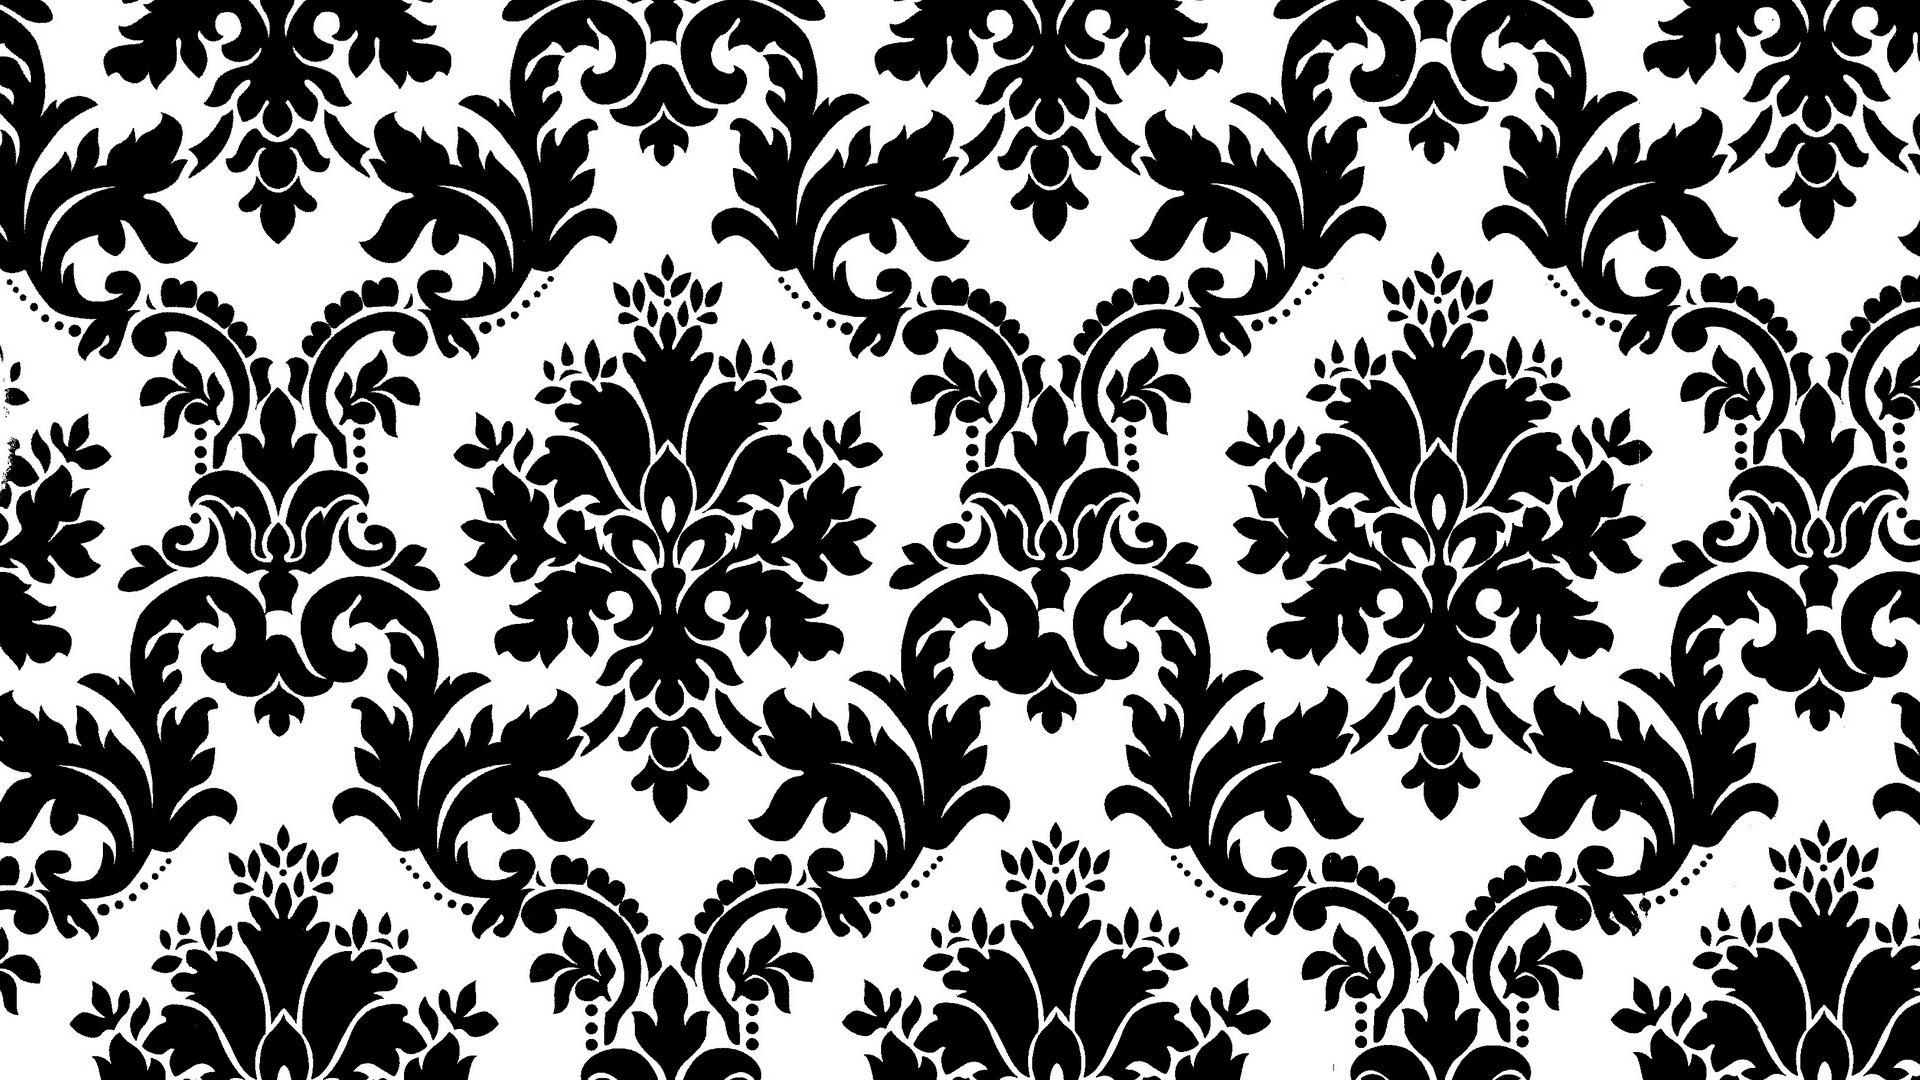 Minimalistic Patterns Wallpaper 19201080 Minimalistic Patterns 1920x1080